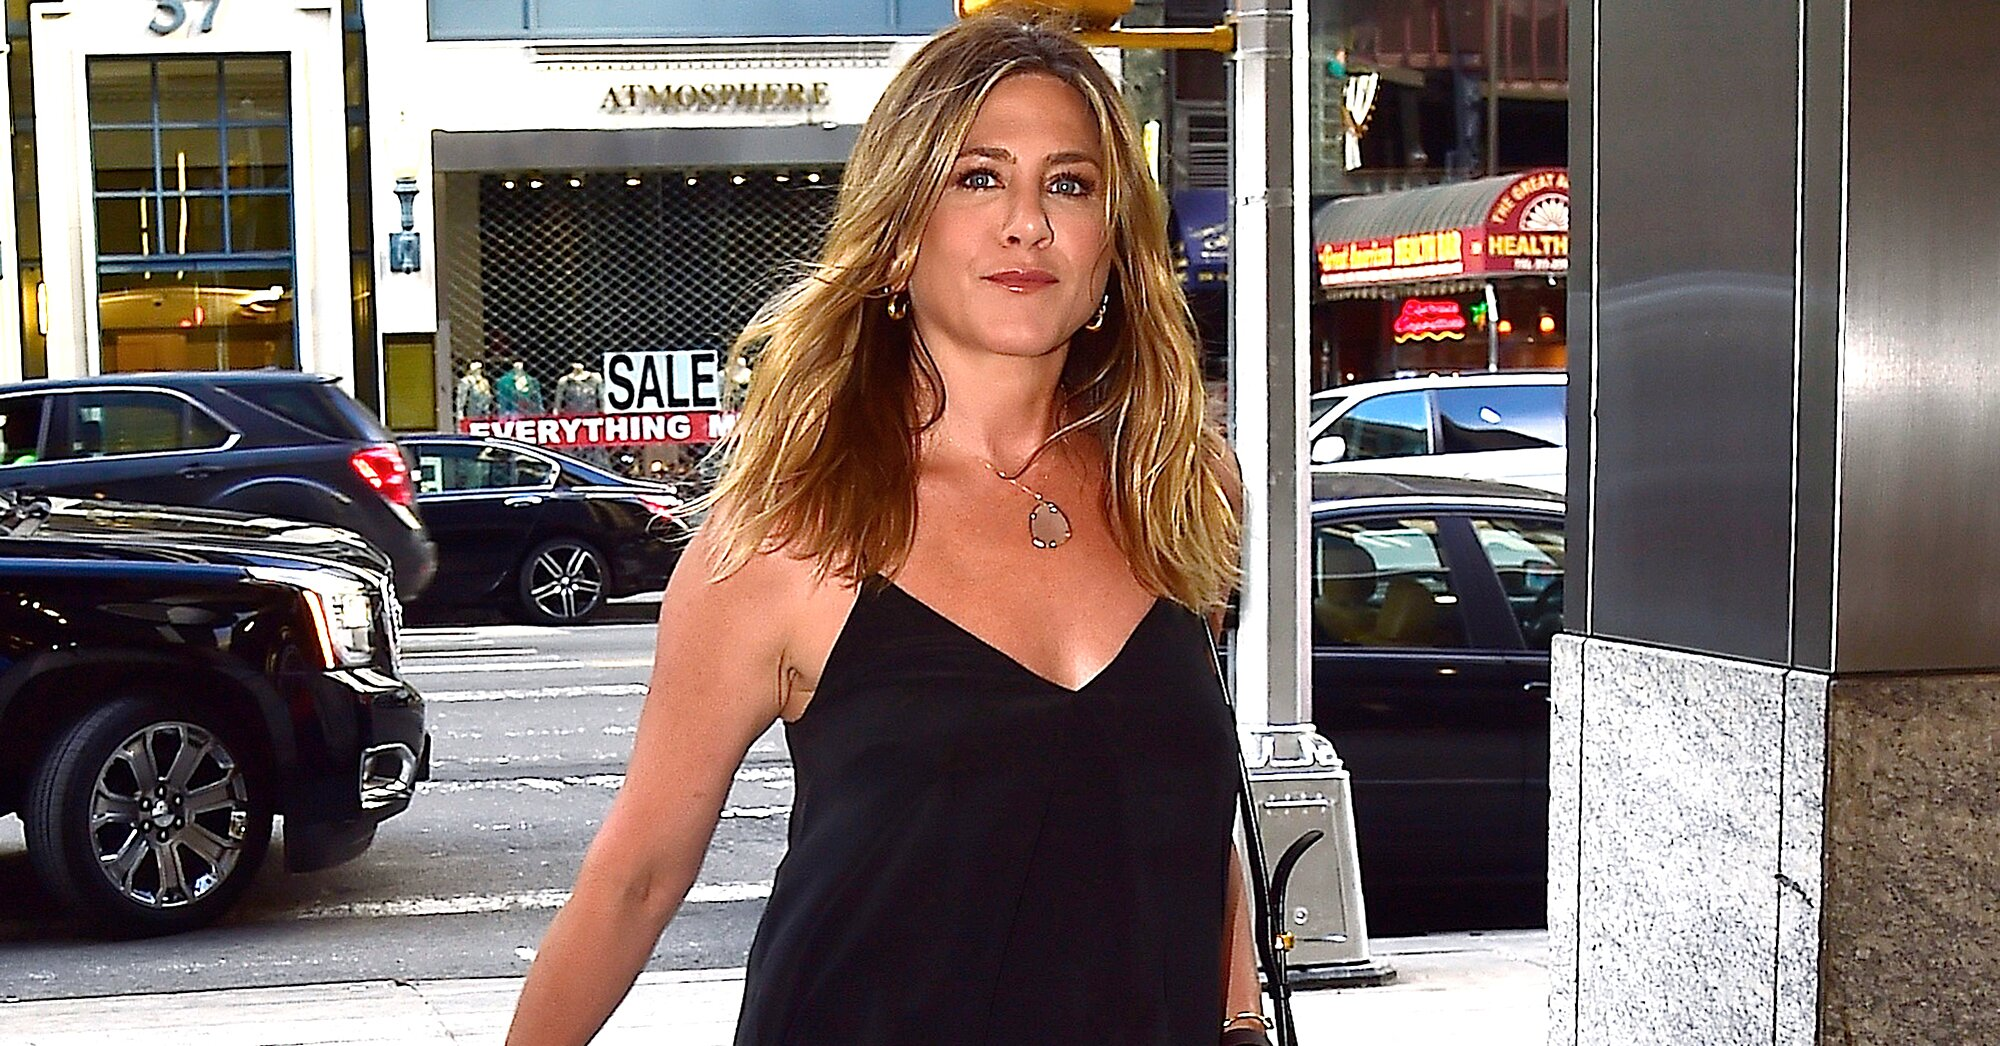 Jennifer Aniston and Selena Gomez Both Own This Brand, and It's Having a Major Sale